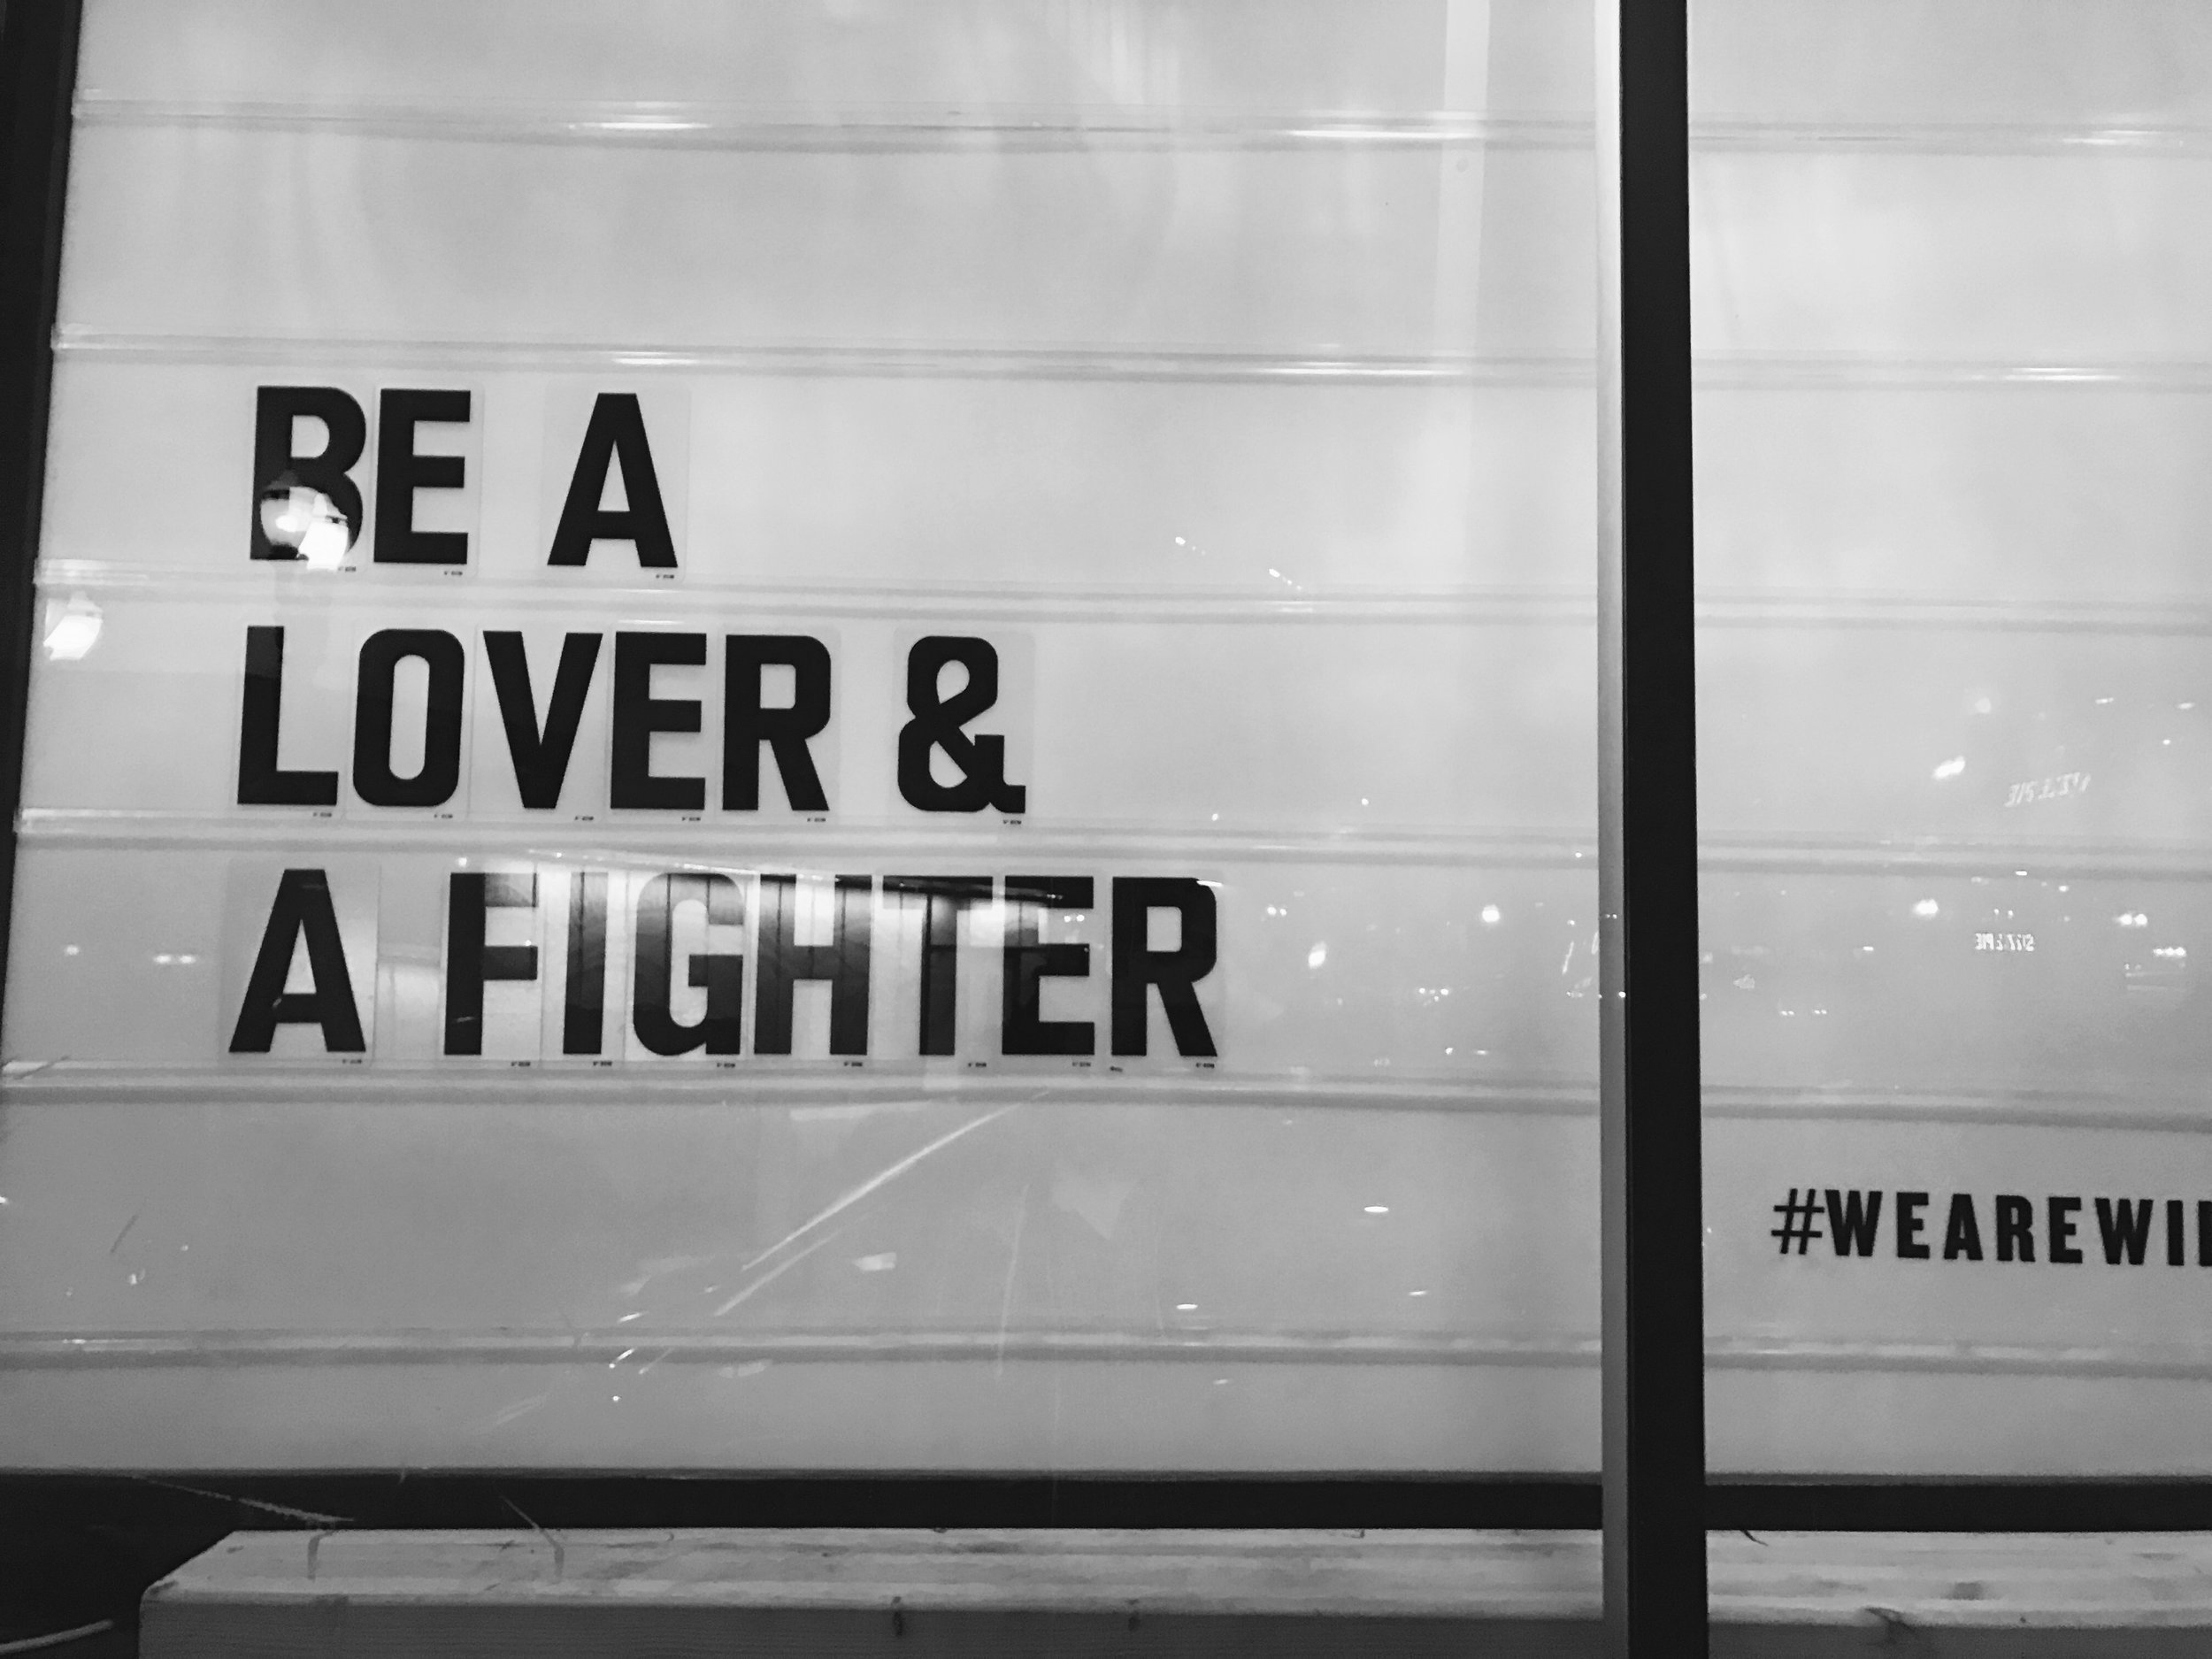 BE A LOVER & A FIGHTER